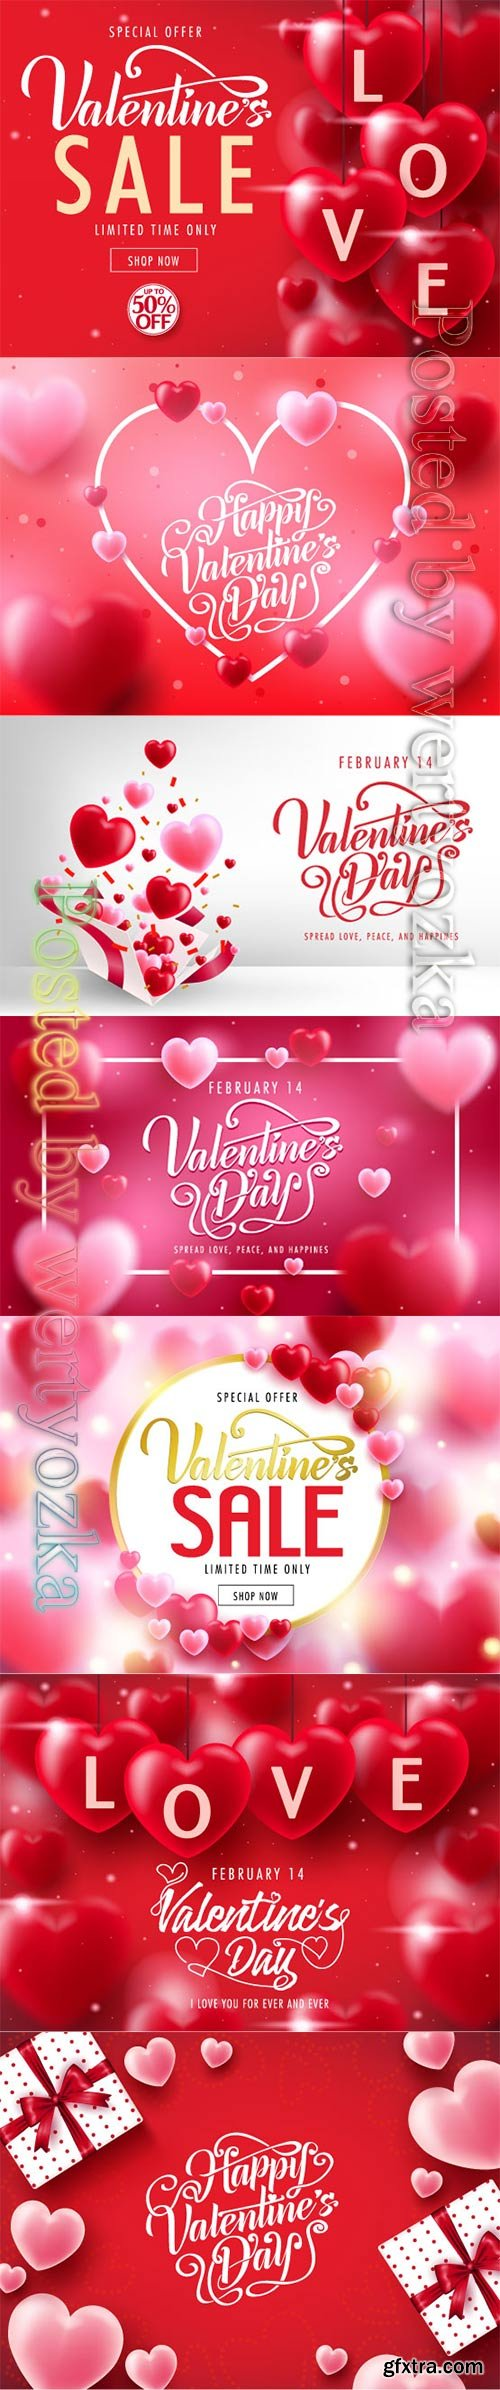 Valentine's Day decorative lovely greeting vector card